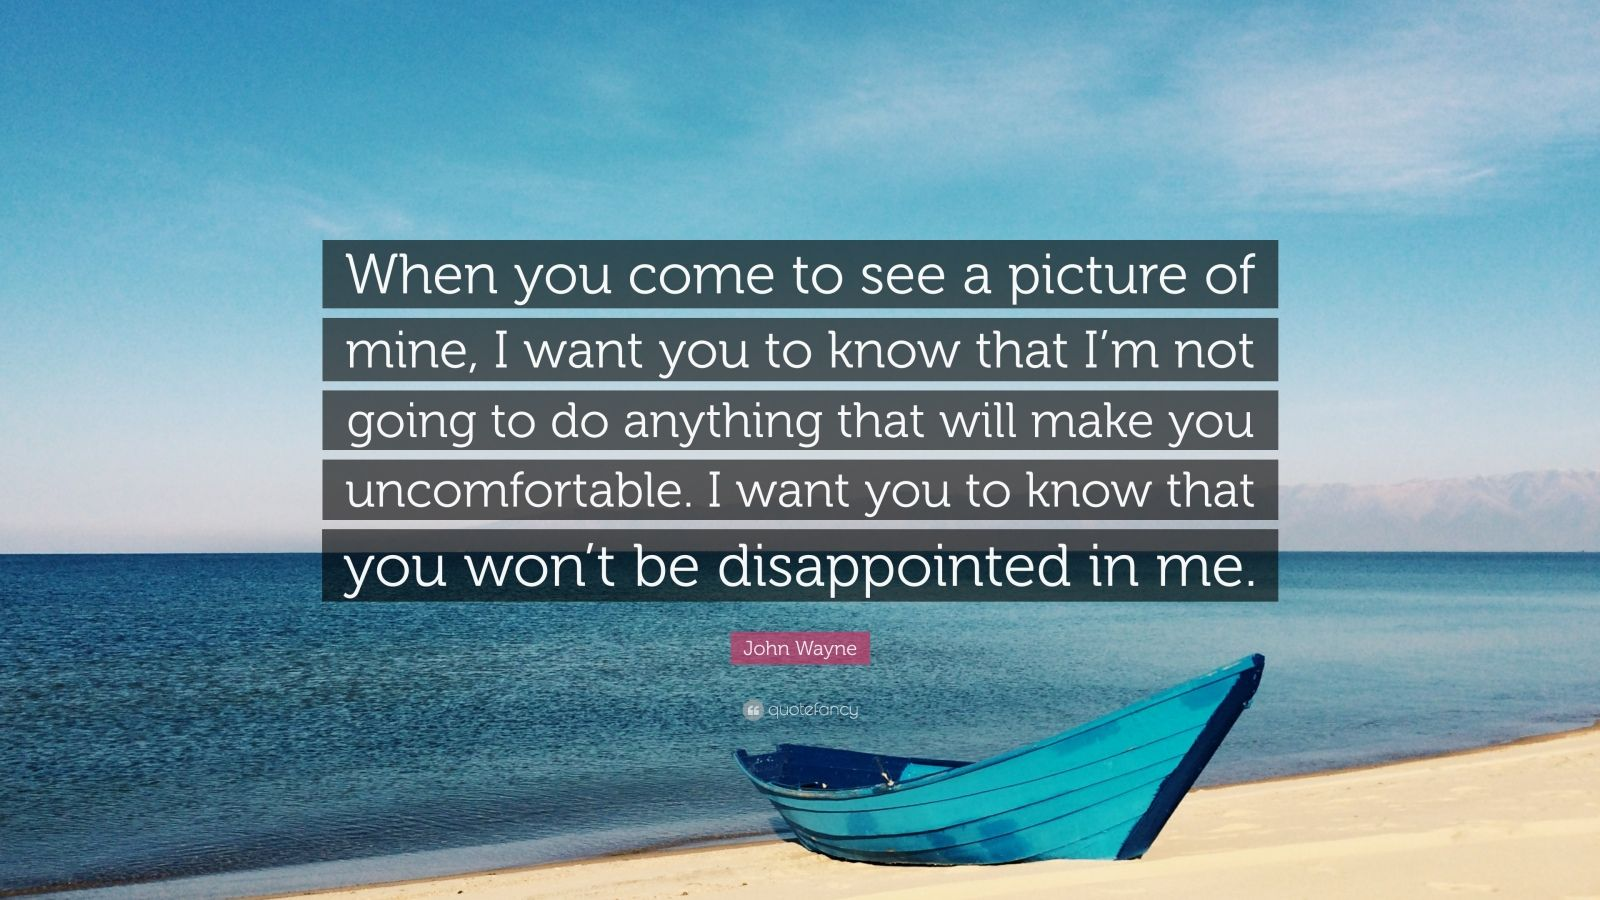 """John Wayne Quote: """"When you come to see a picture of mine, I want you to know that I'm not going to do anything that will make you uncomfortable. I want you to know that you won't be disappointed in me."""""""